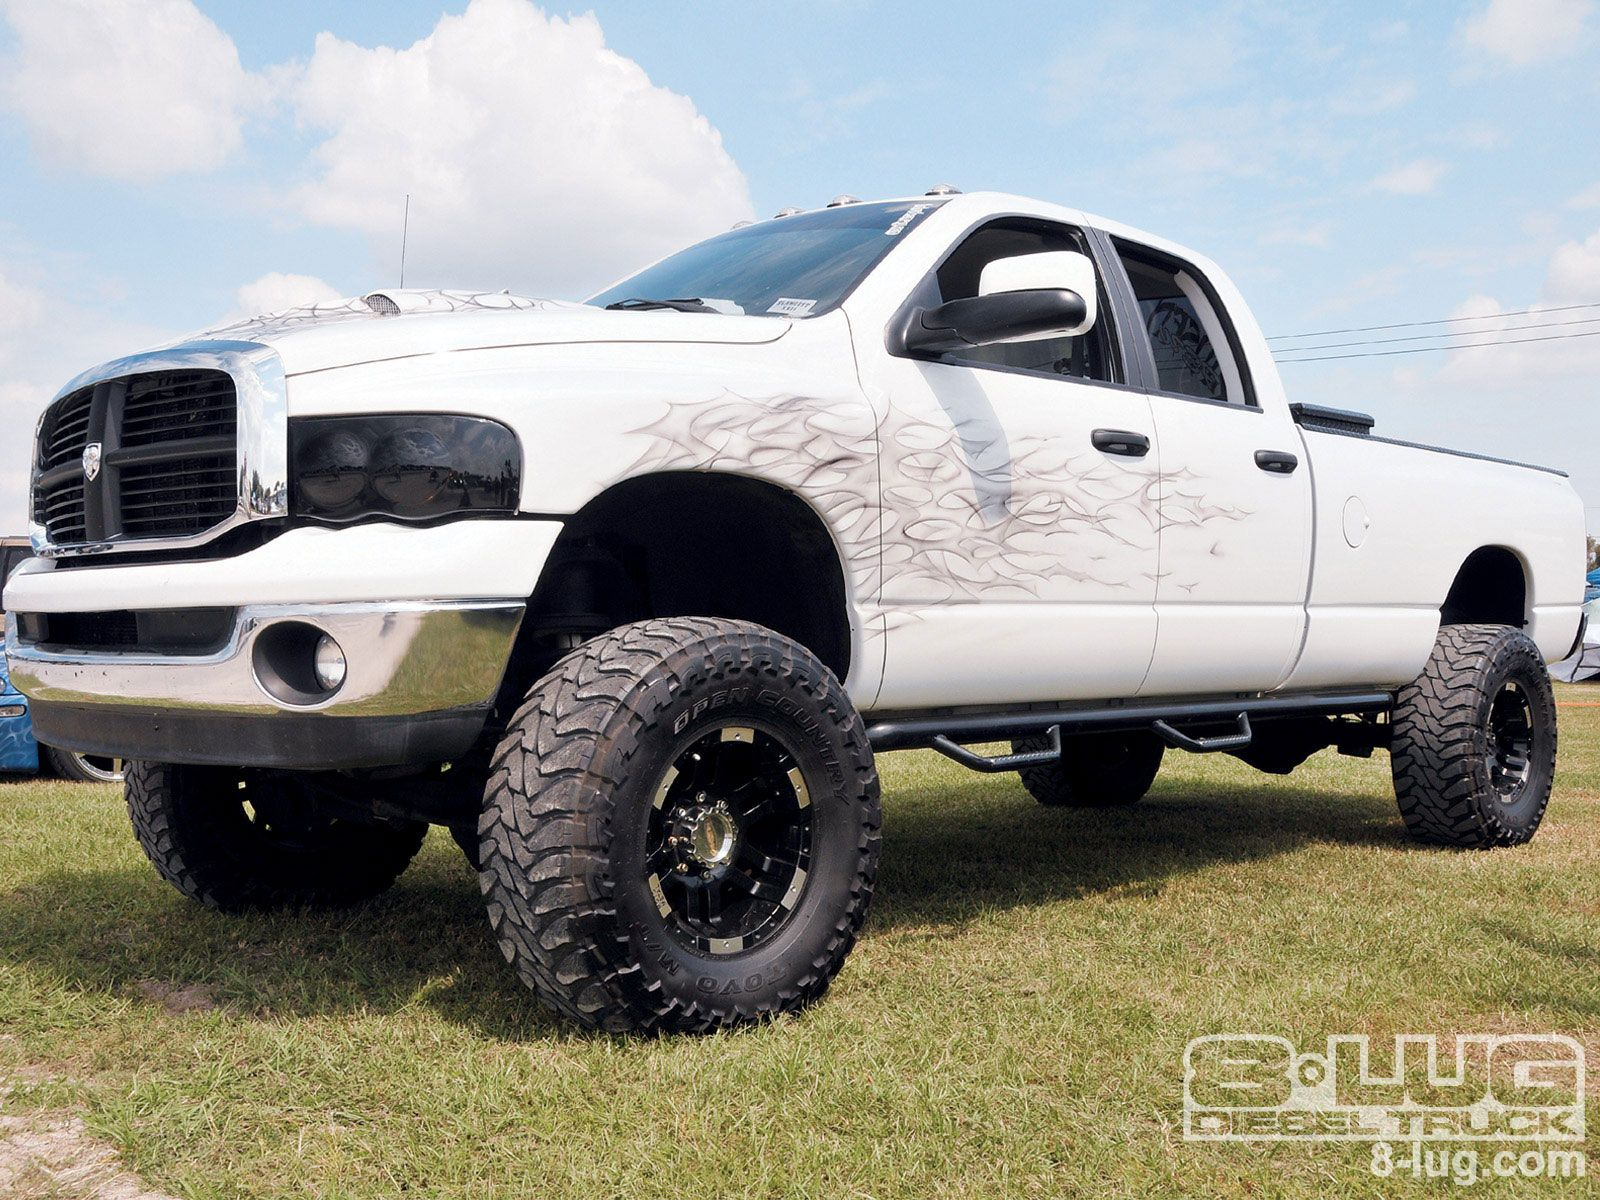 white lifted dodge ram 2500 truck - White Dodge Ram 2500 Lifted